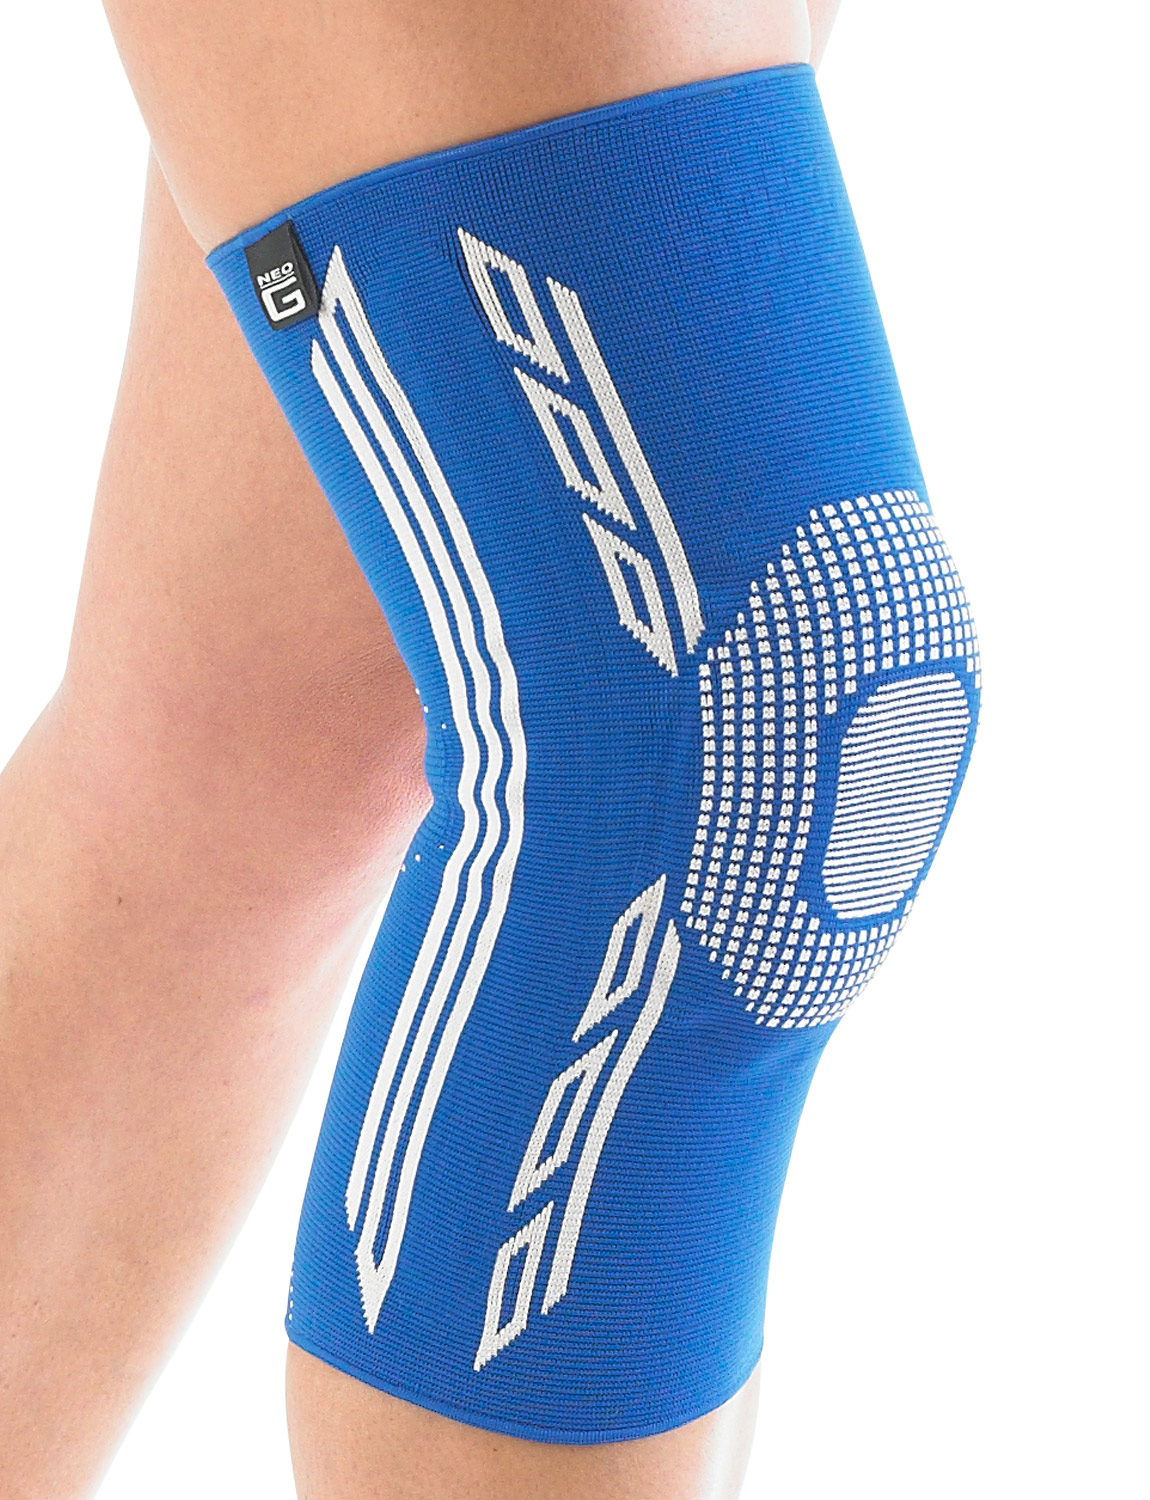 453 - AIRFLOW PLUS STABILIZED KNEE SUPPORT WITH SILICONE PATELLA CUSHION